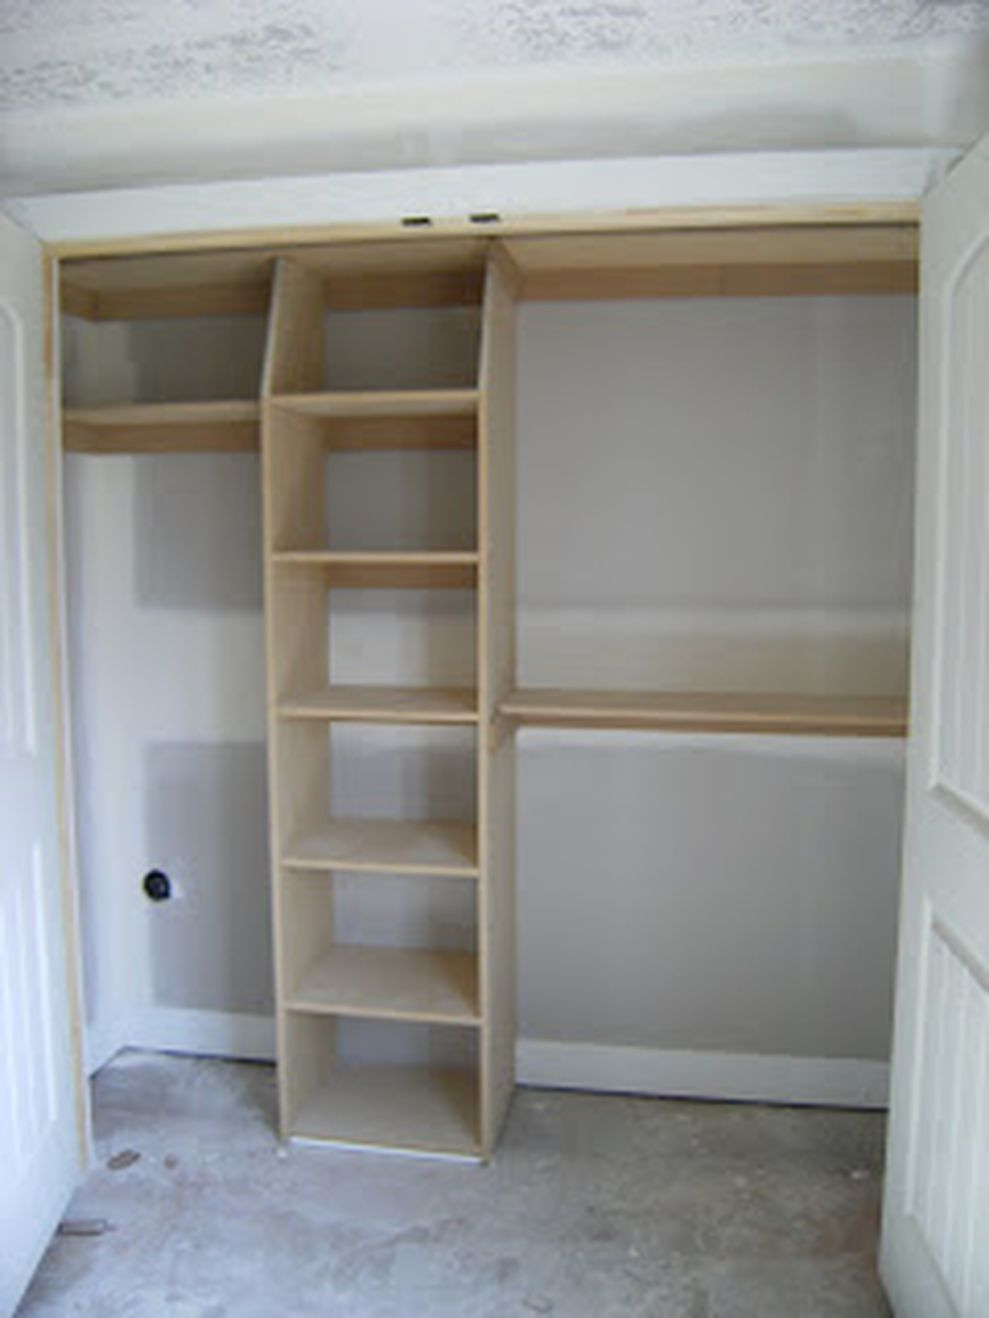 71 easy and affordable diy wood closet shelves ideas with